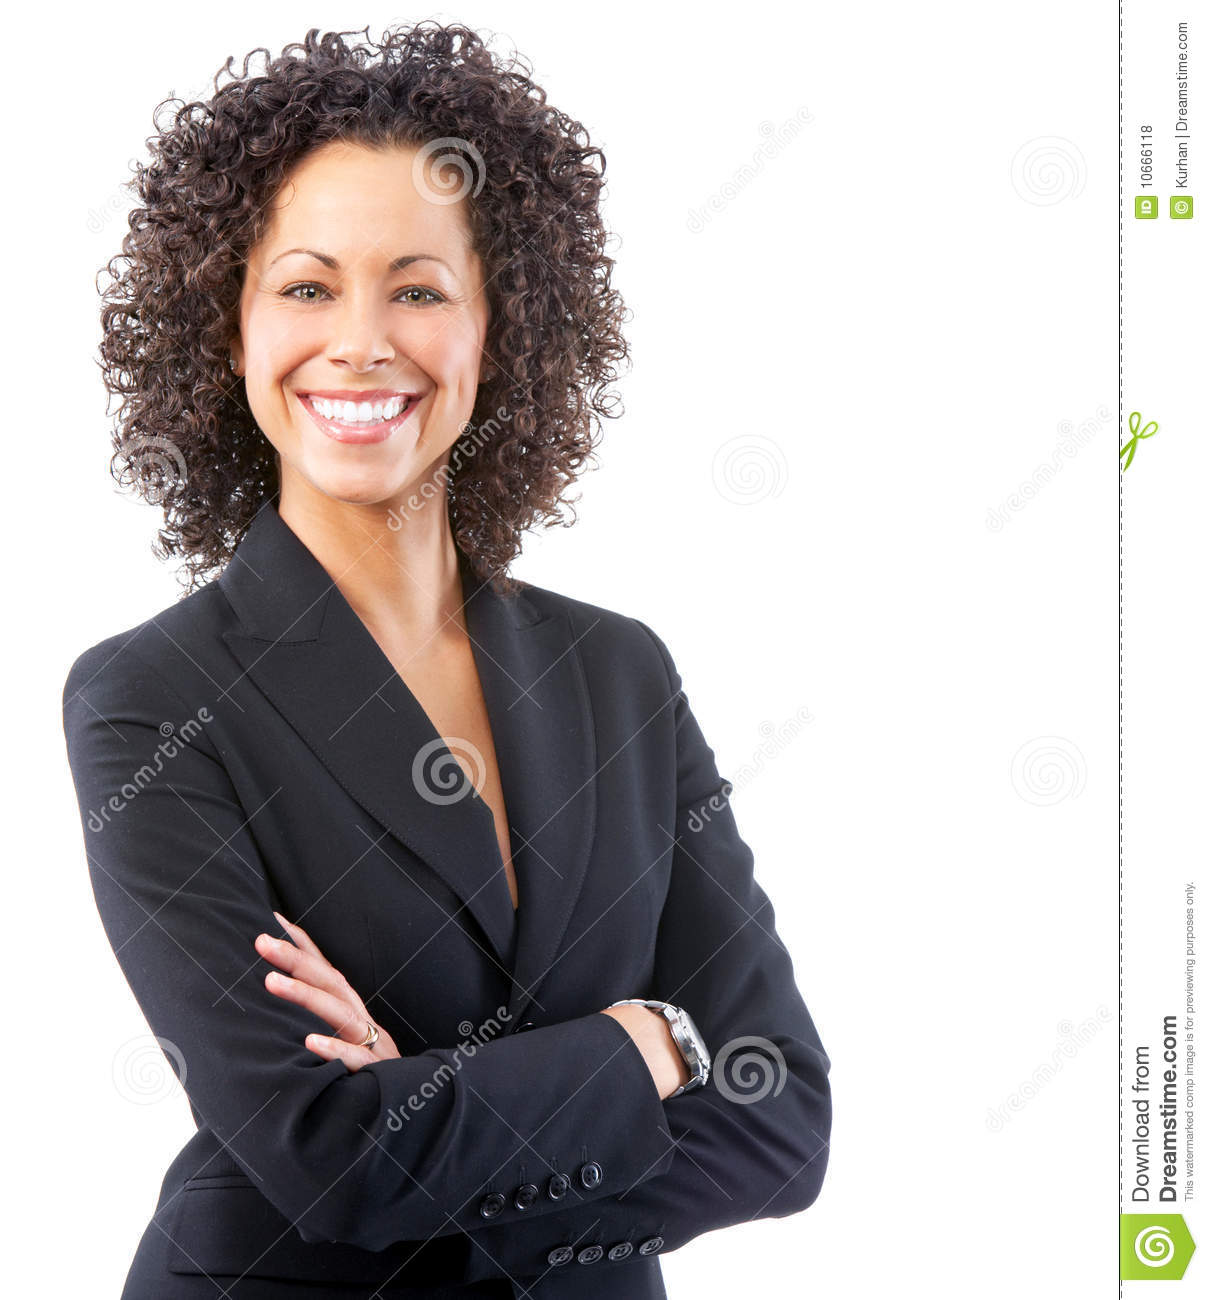 smiling-business-woman-10666118.jpg